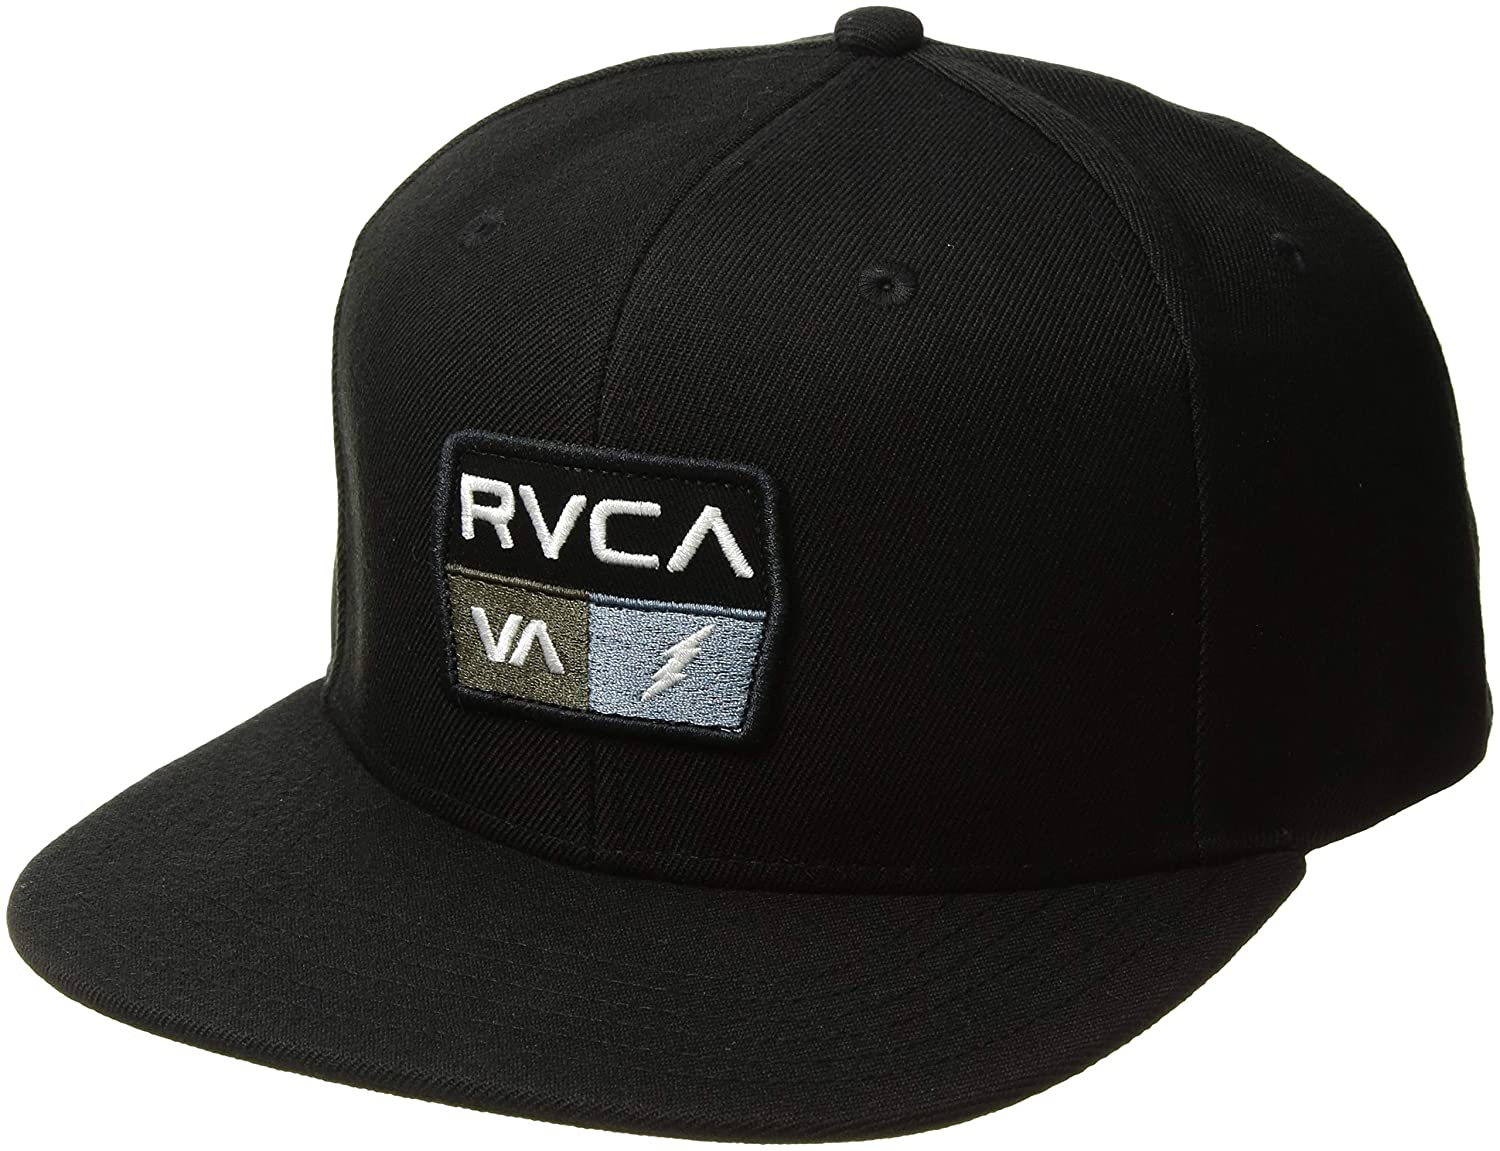 RVCA Men's 9volt Snapback Hat Black One Size MAHWQR9V